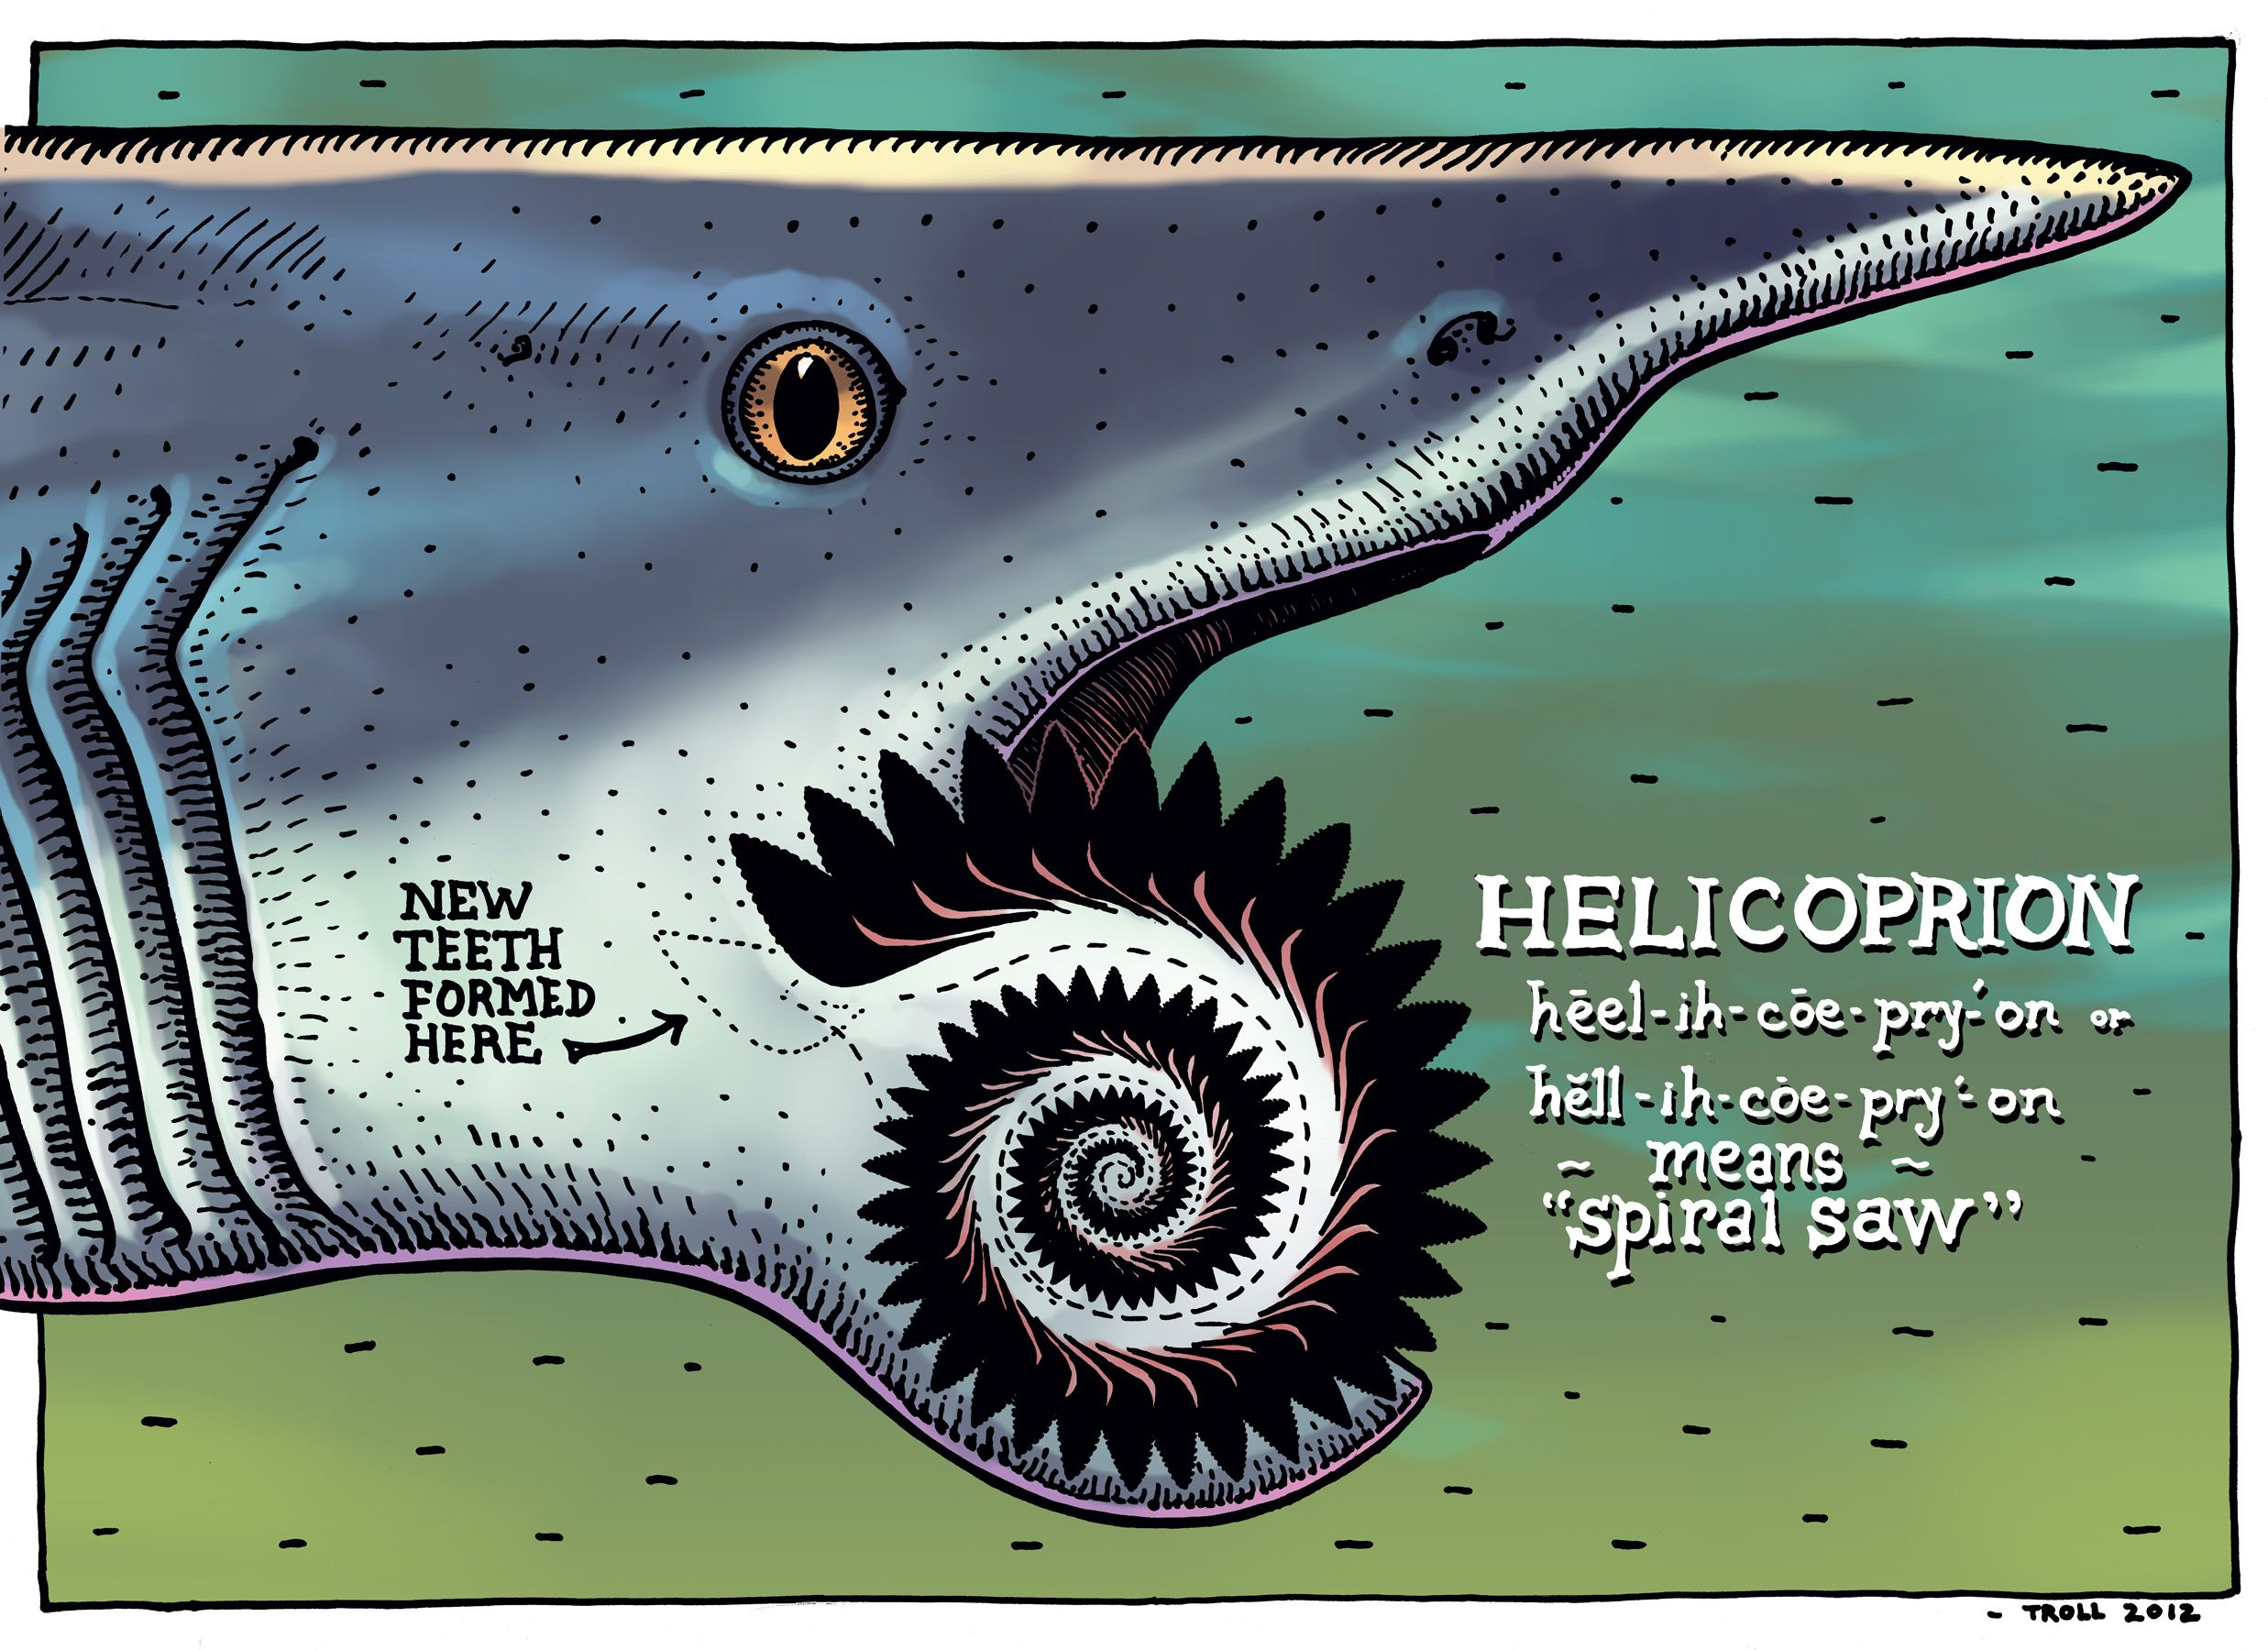 Buzzsaw Jaw Helicoprion Was A Freaky Ratfish